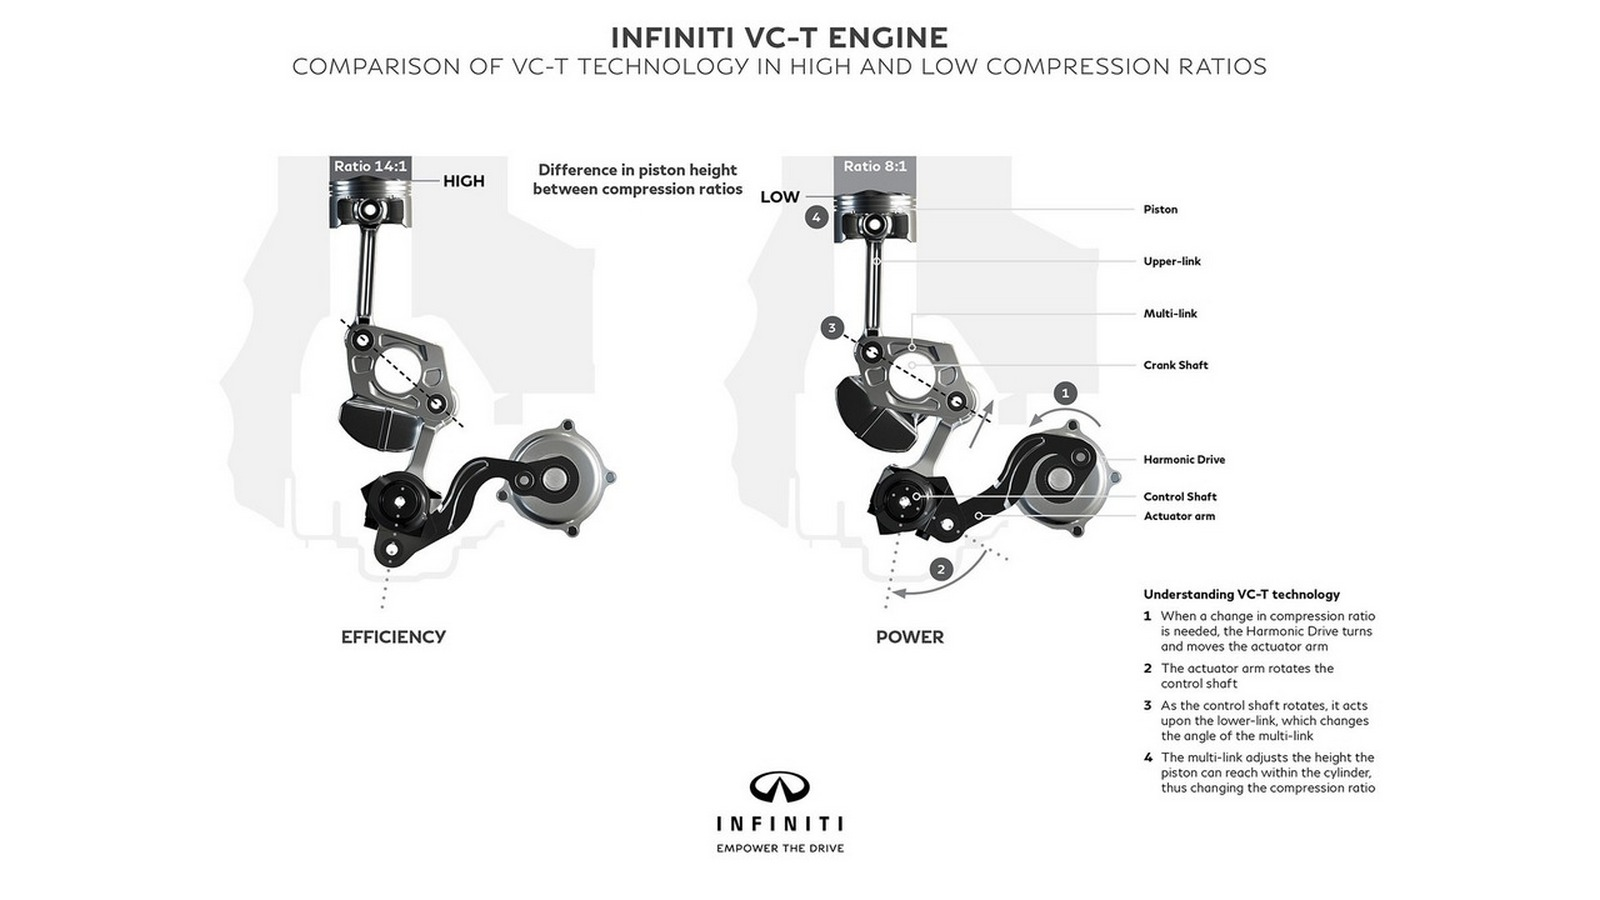 Nissan Infiniti Variable Compression-Turbocharged (VC-T)